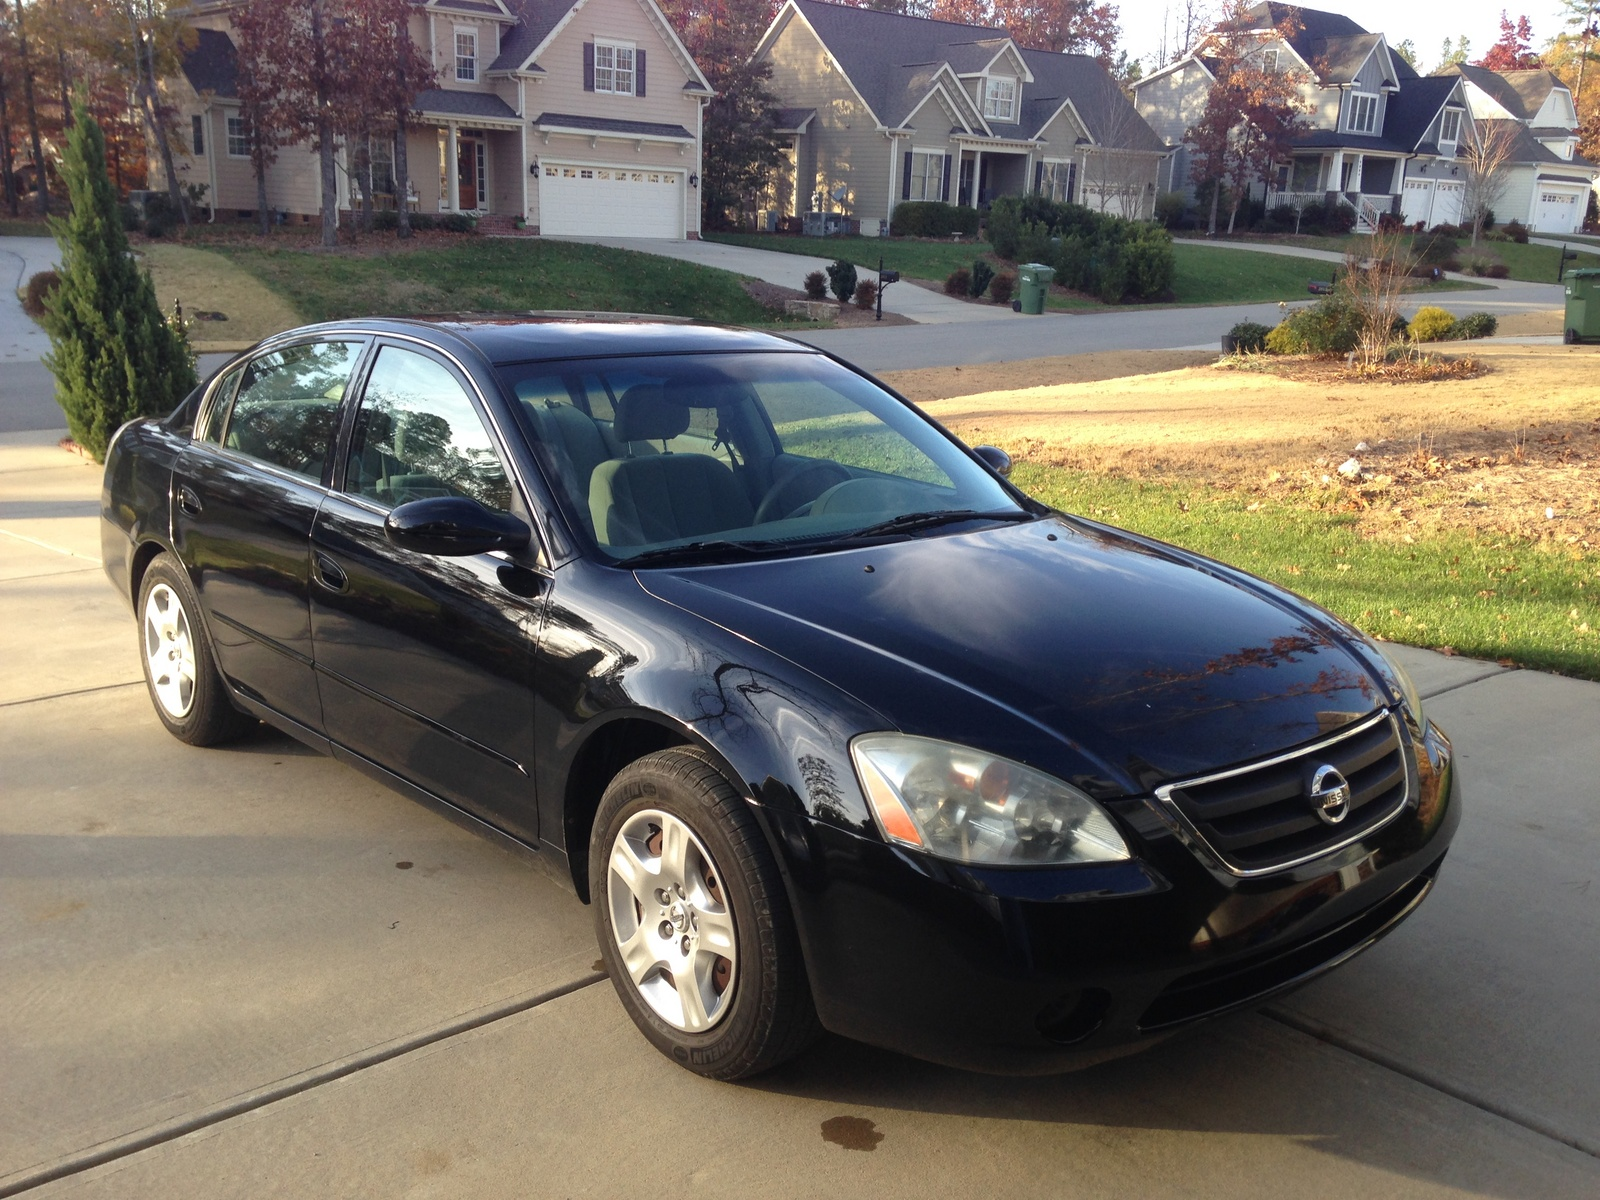 2009 Honda Accord Specs Picture of 2003 Nissan Altima 2.5 S, exterior